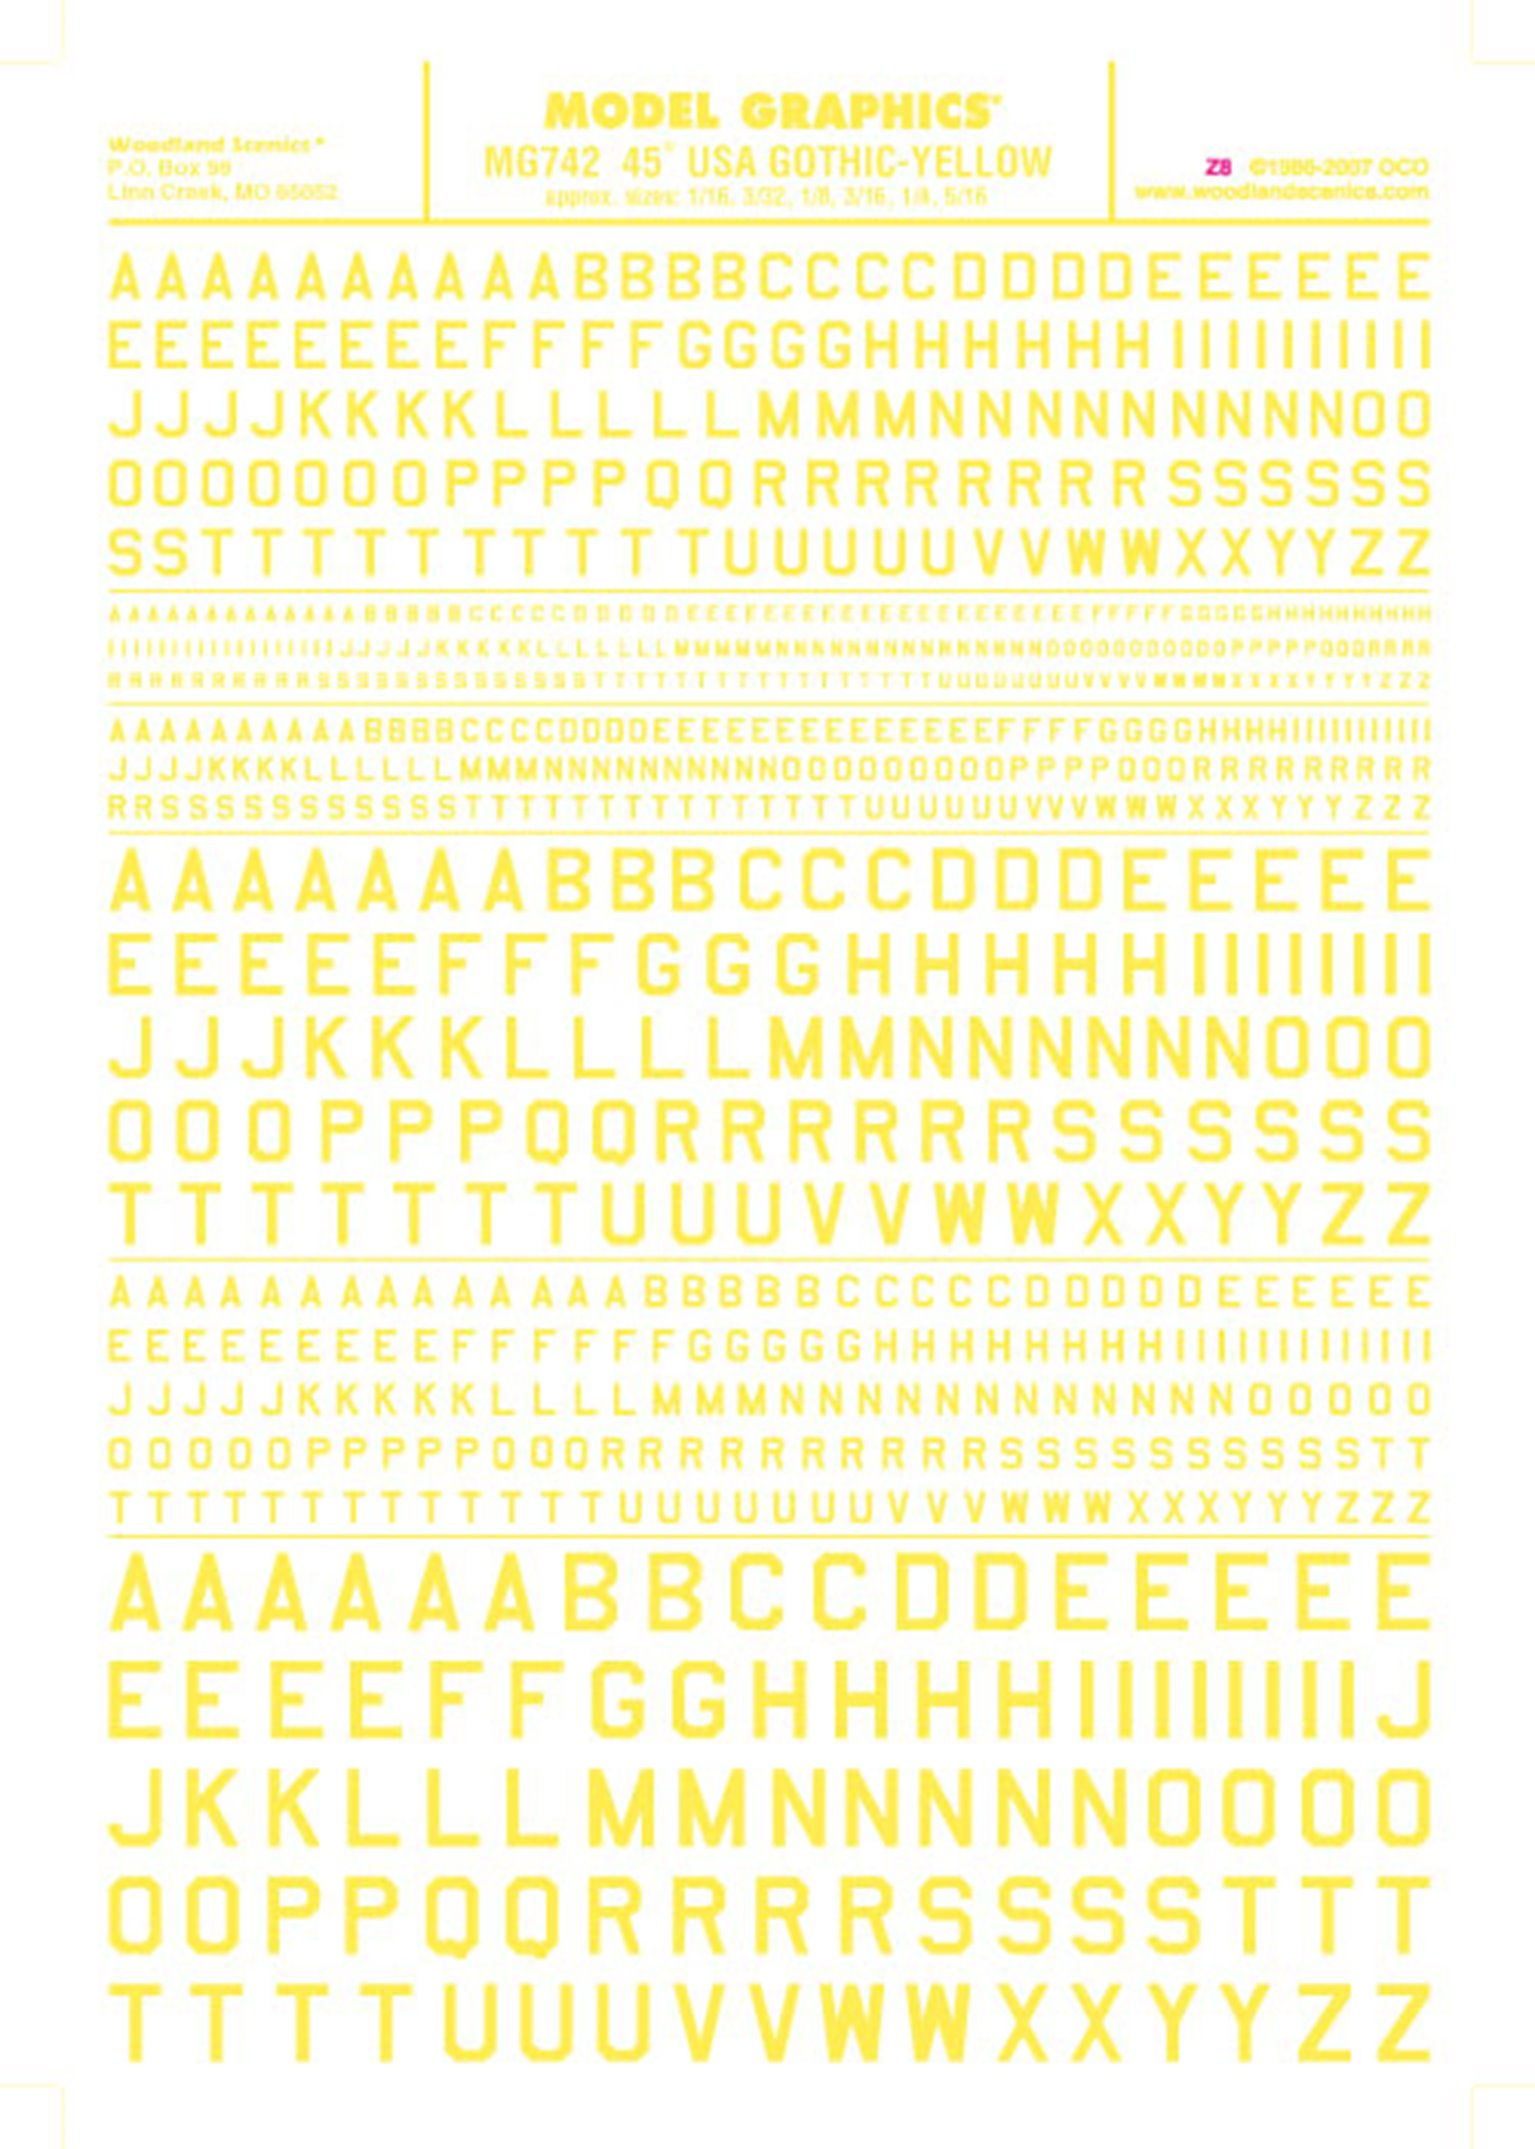 45° USA Gothic - Yellow Dry Transfer Decals